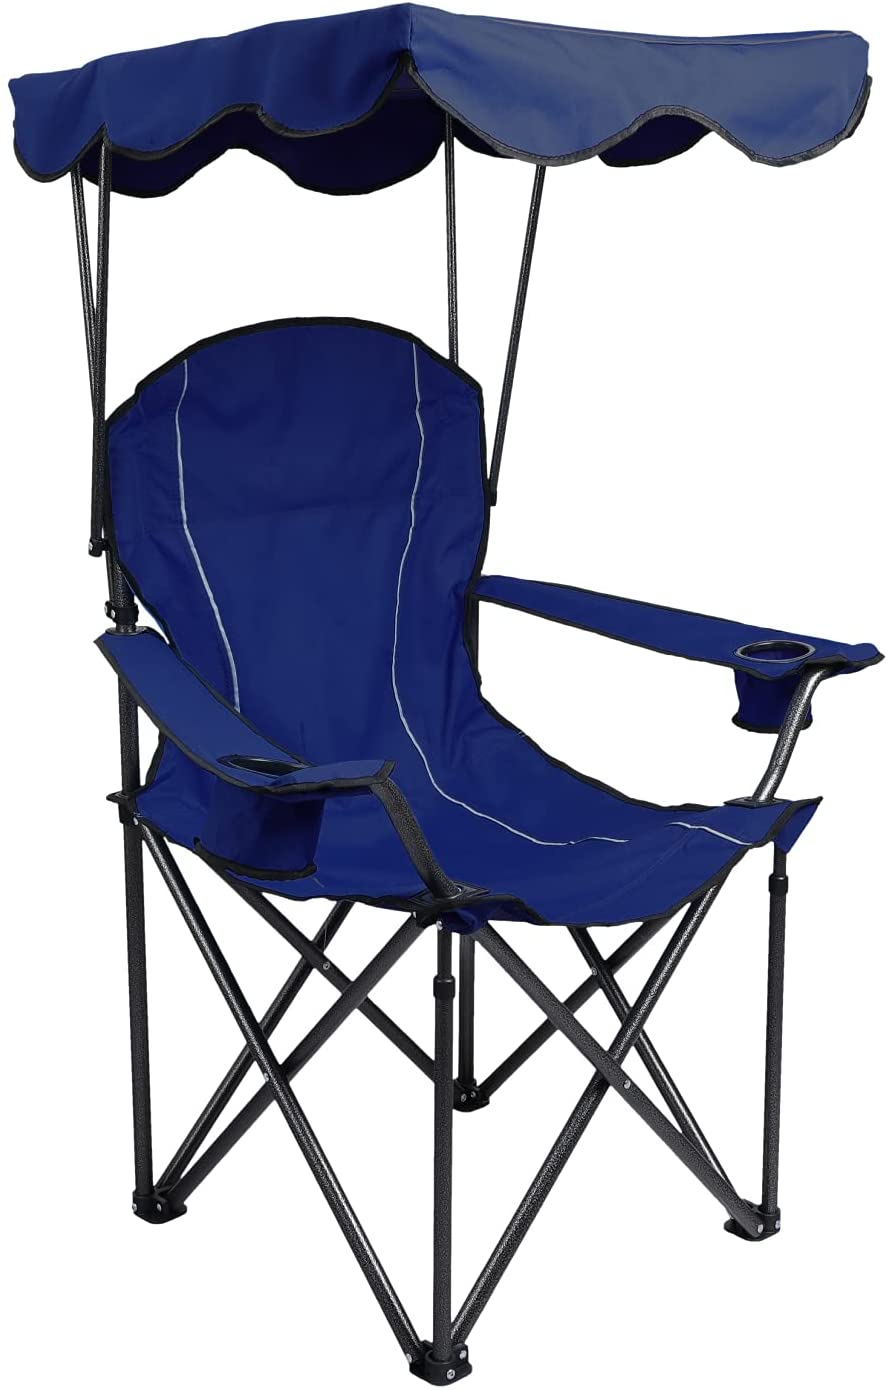 ALPHA CAMP Camp Chair Max 45% OFF with Folding Shade Recliner Canopy Camping 4 years warranty